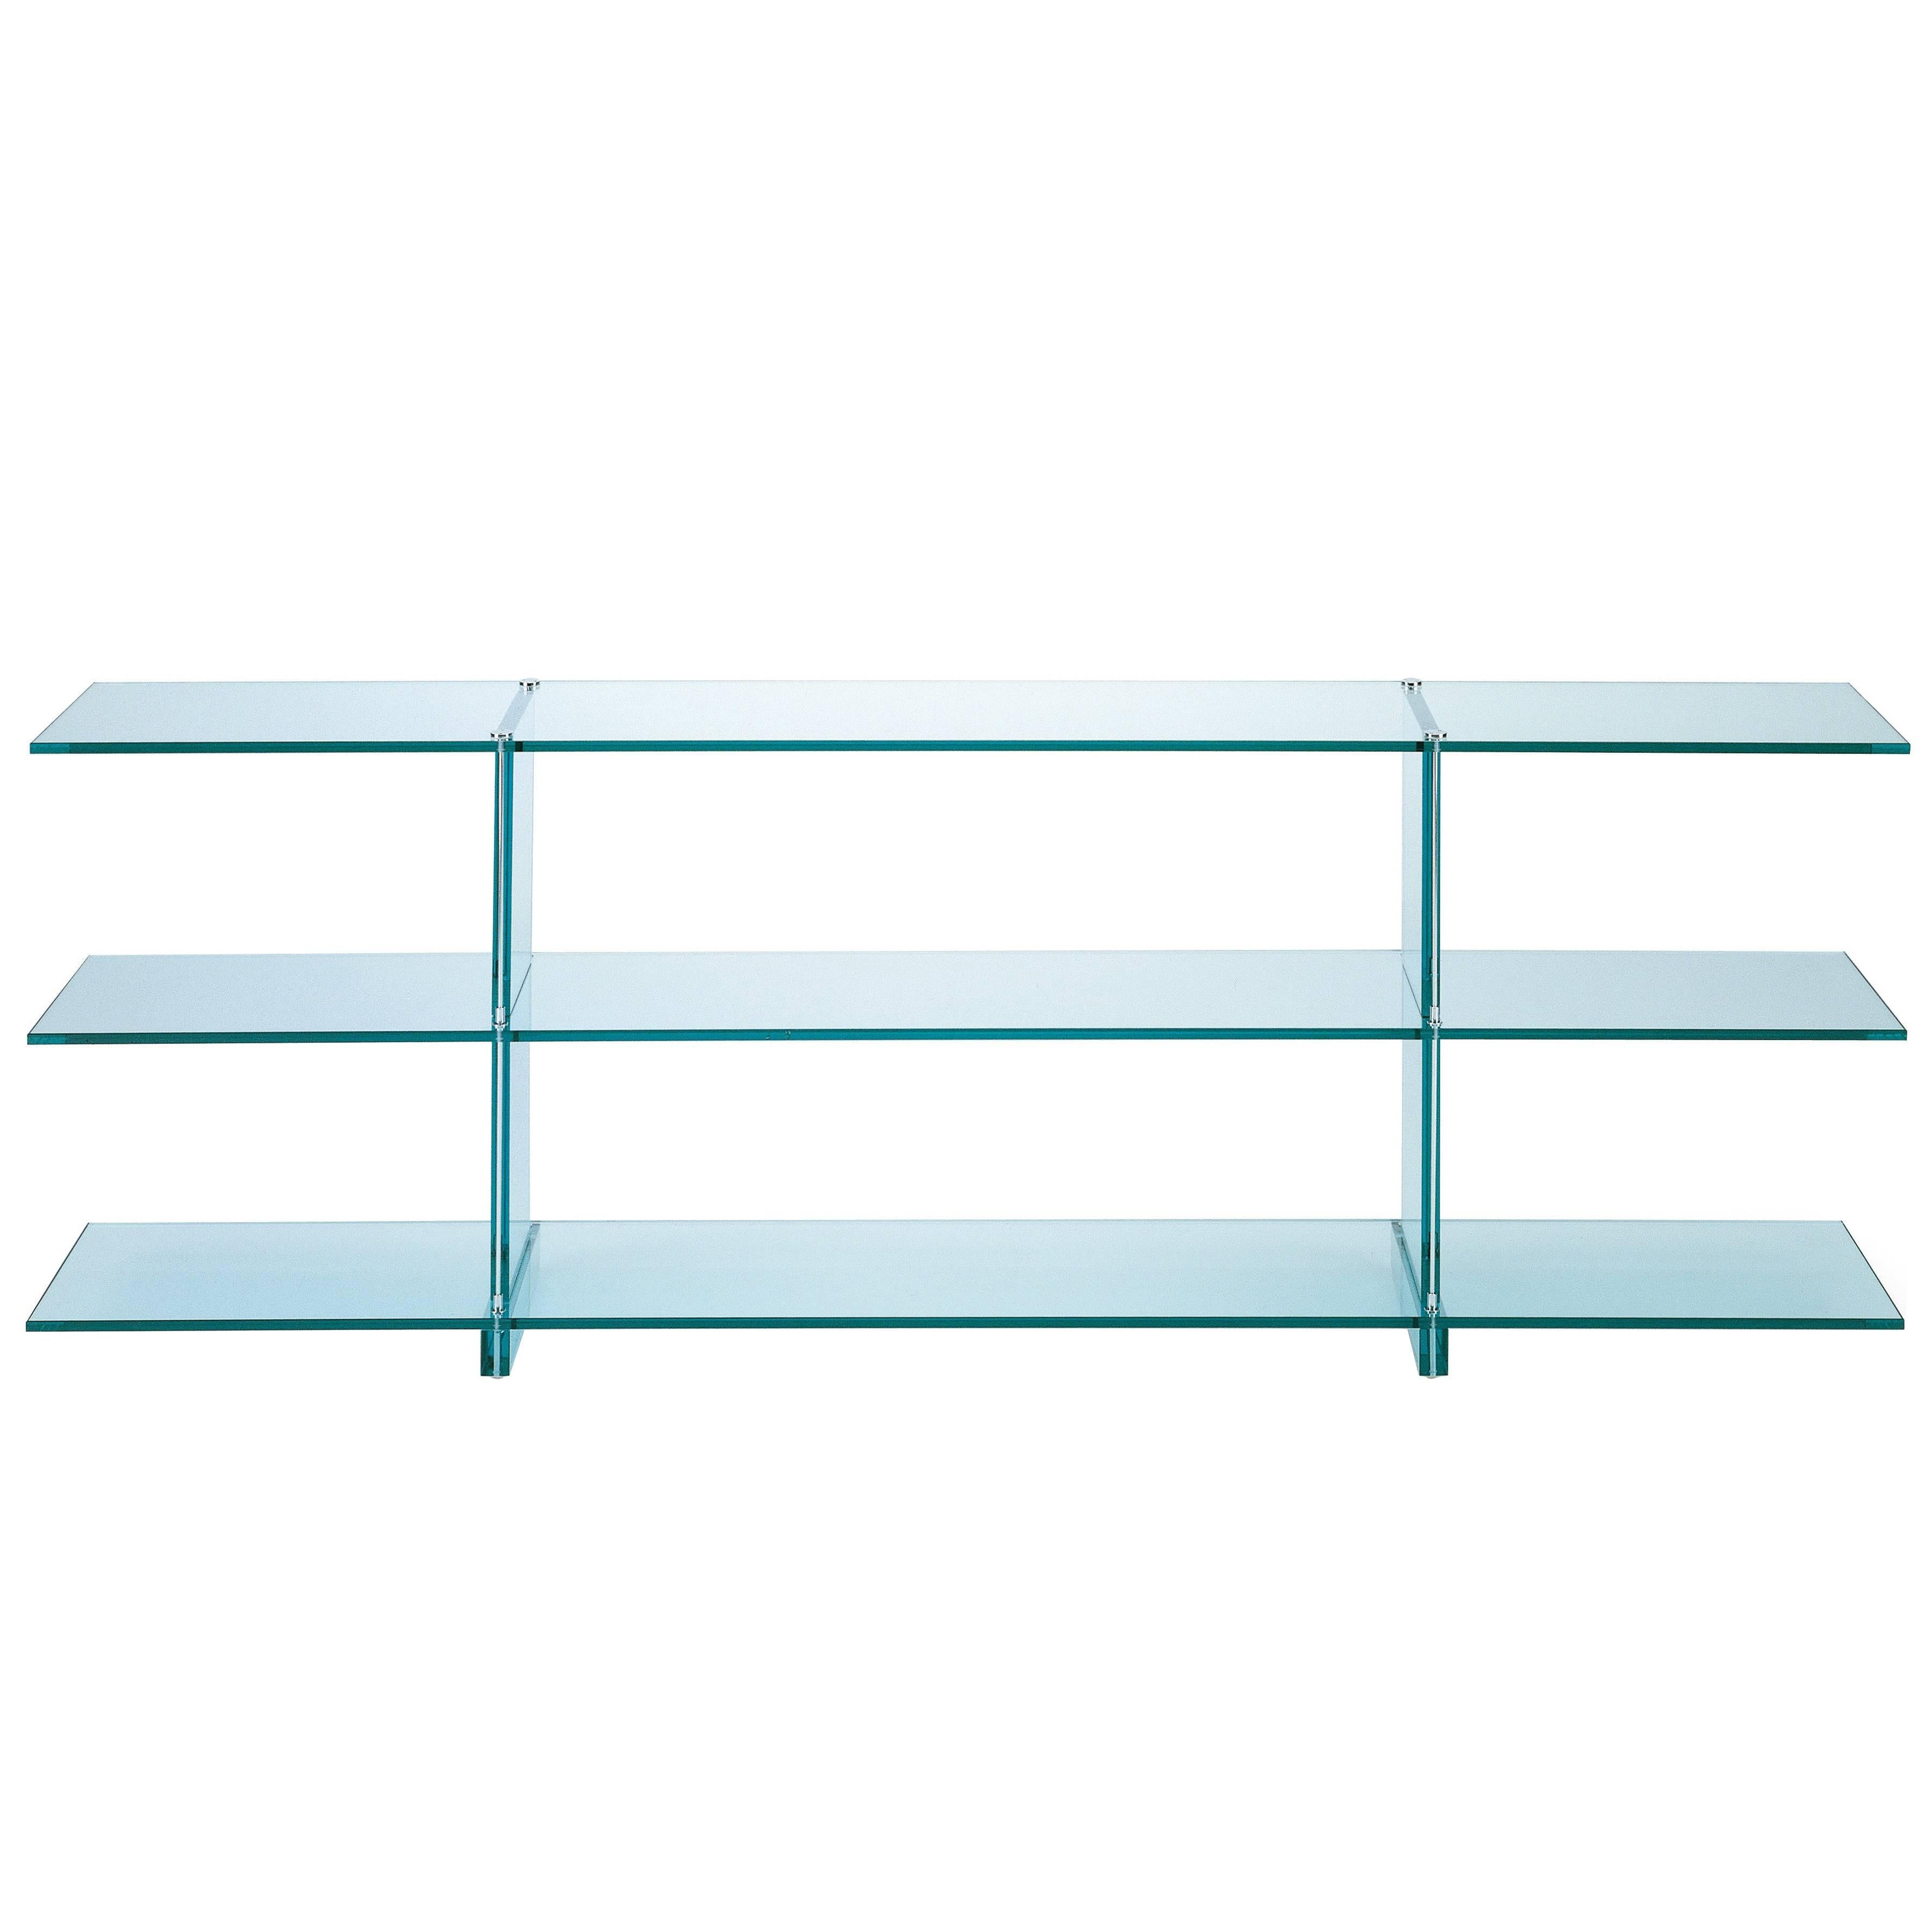 Teso glass console designed by renzo piano in 1985 for fontana arte for sale at 1stdibs